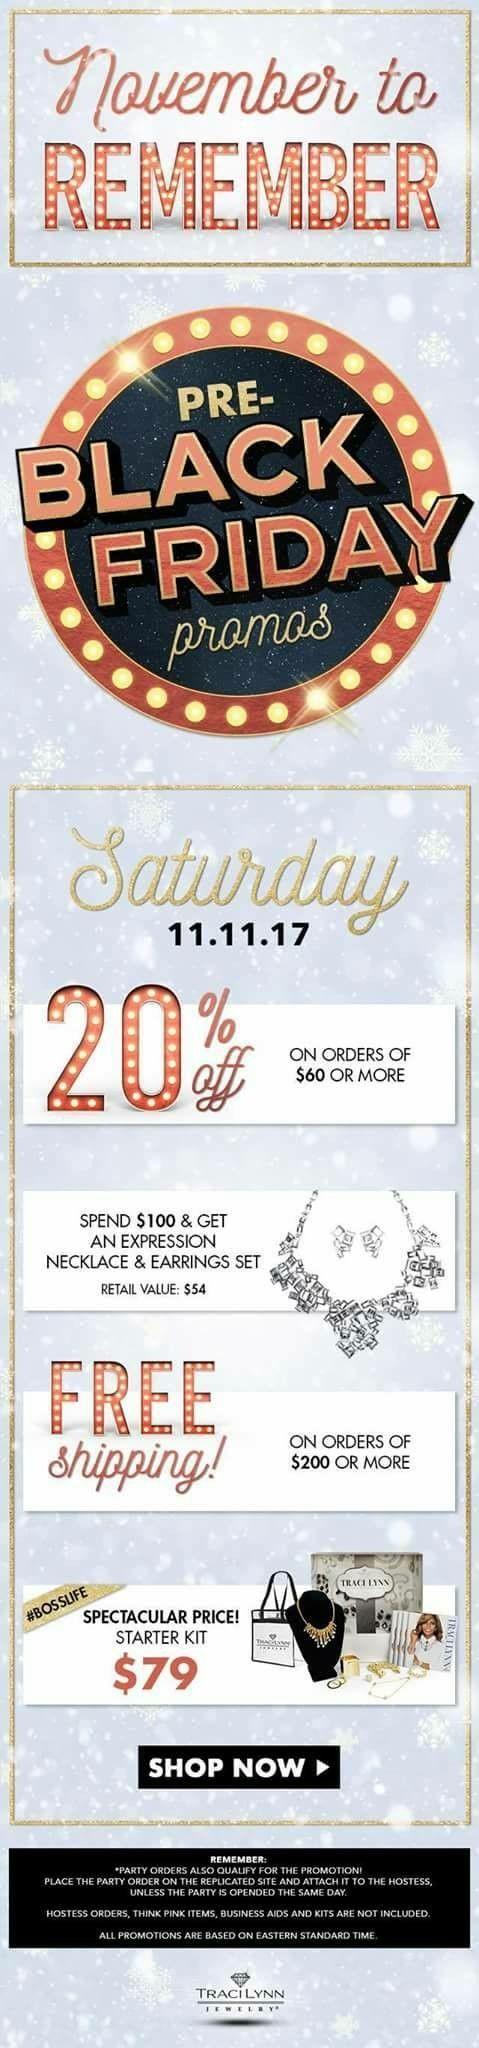 Skip Ahead of the Line & Take Advantage of This Weekend Pre-Black Friday Promo Sale 20% off $60/ Free Necklace with a $100 Purchase or more/Free Shipping with a $200 or more Purchase  The holidays are around the corner.  Please connect with me to purchase your gifts for the special people in your life. You can also shop  http://www.TraciLynnJewelry.com/CristinaRodriguezBaez You can Join the Team for $79 (Today) $89 (Tomorrow) #BeYourOwnBoss